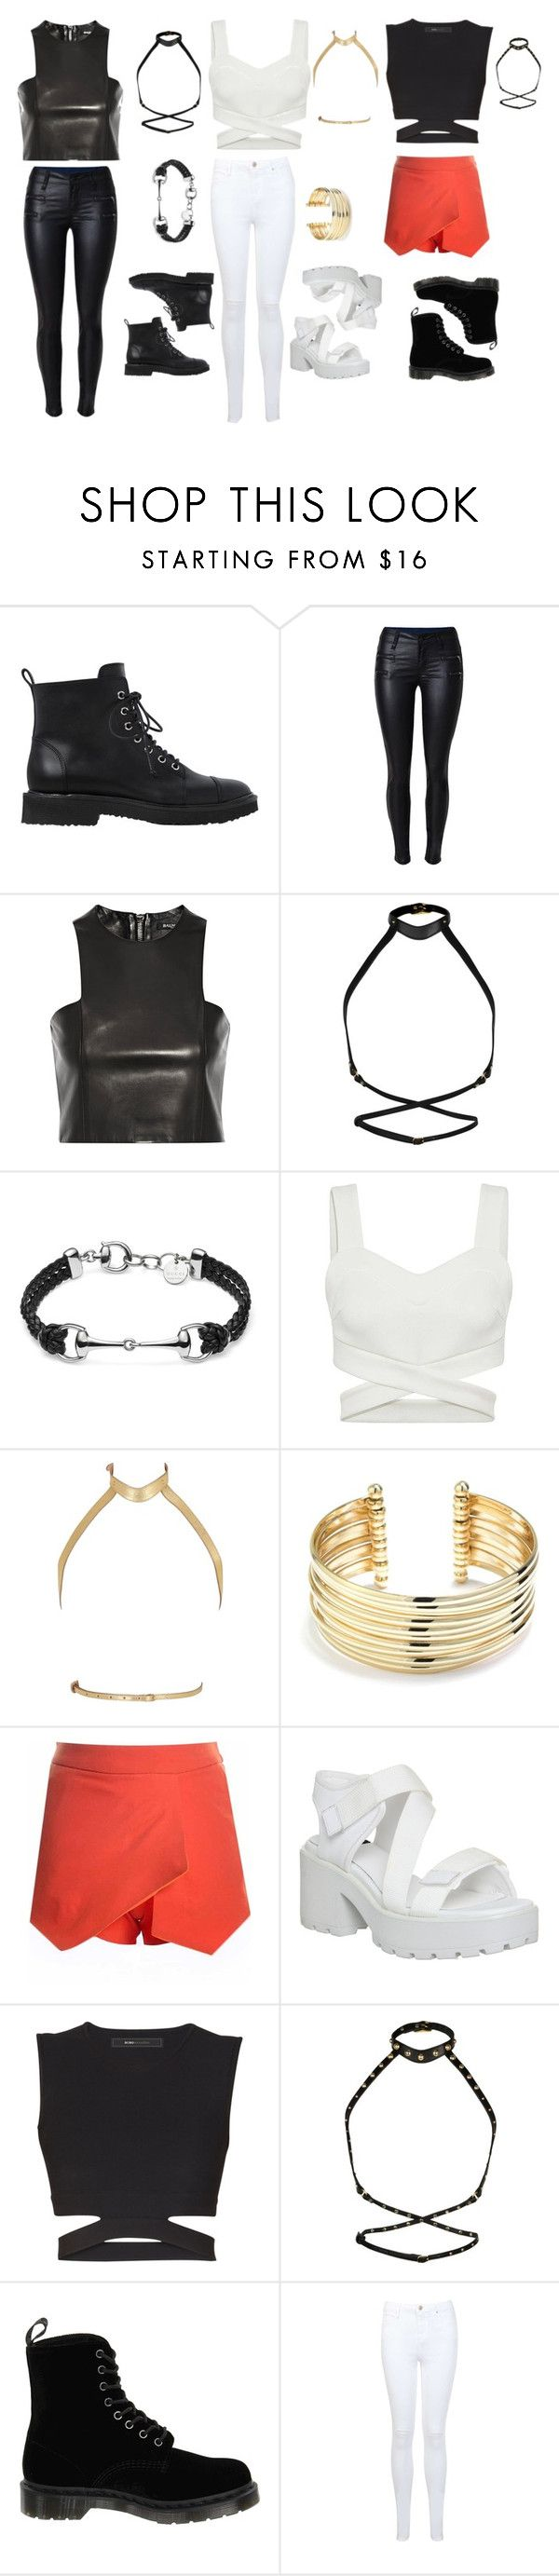 """IOI - Whatta Man"" by kpopinspired0525 ❤ liked on Polyvore featuring Giuseppe Zanotti, Balmain, Zana Bayne, Gucci, Belk Silverworks, Vagabond, BCBGMAXAZRIA, Dr. Martens, Miss Selfridge and kpop"